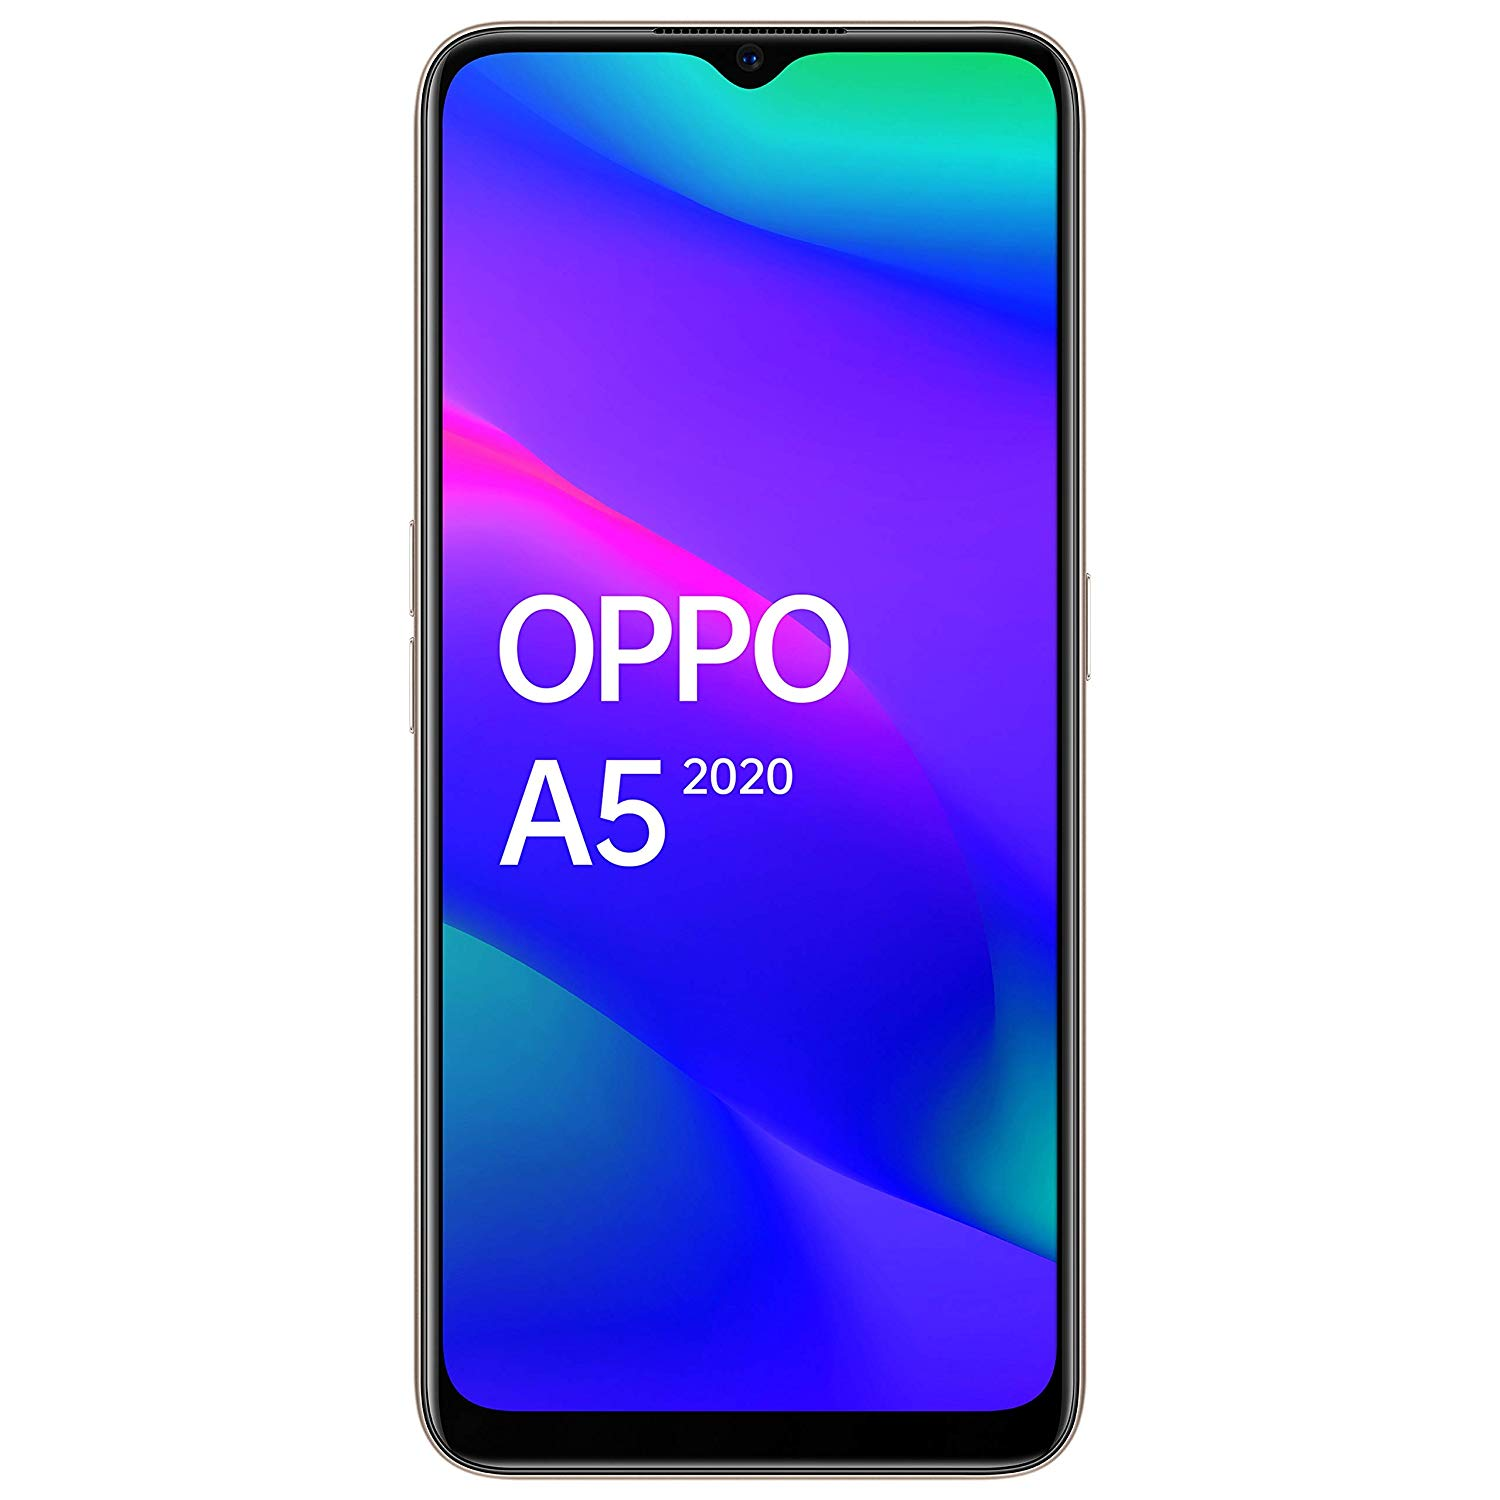 Oppo A5 2020 3GB Image